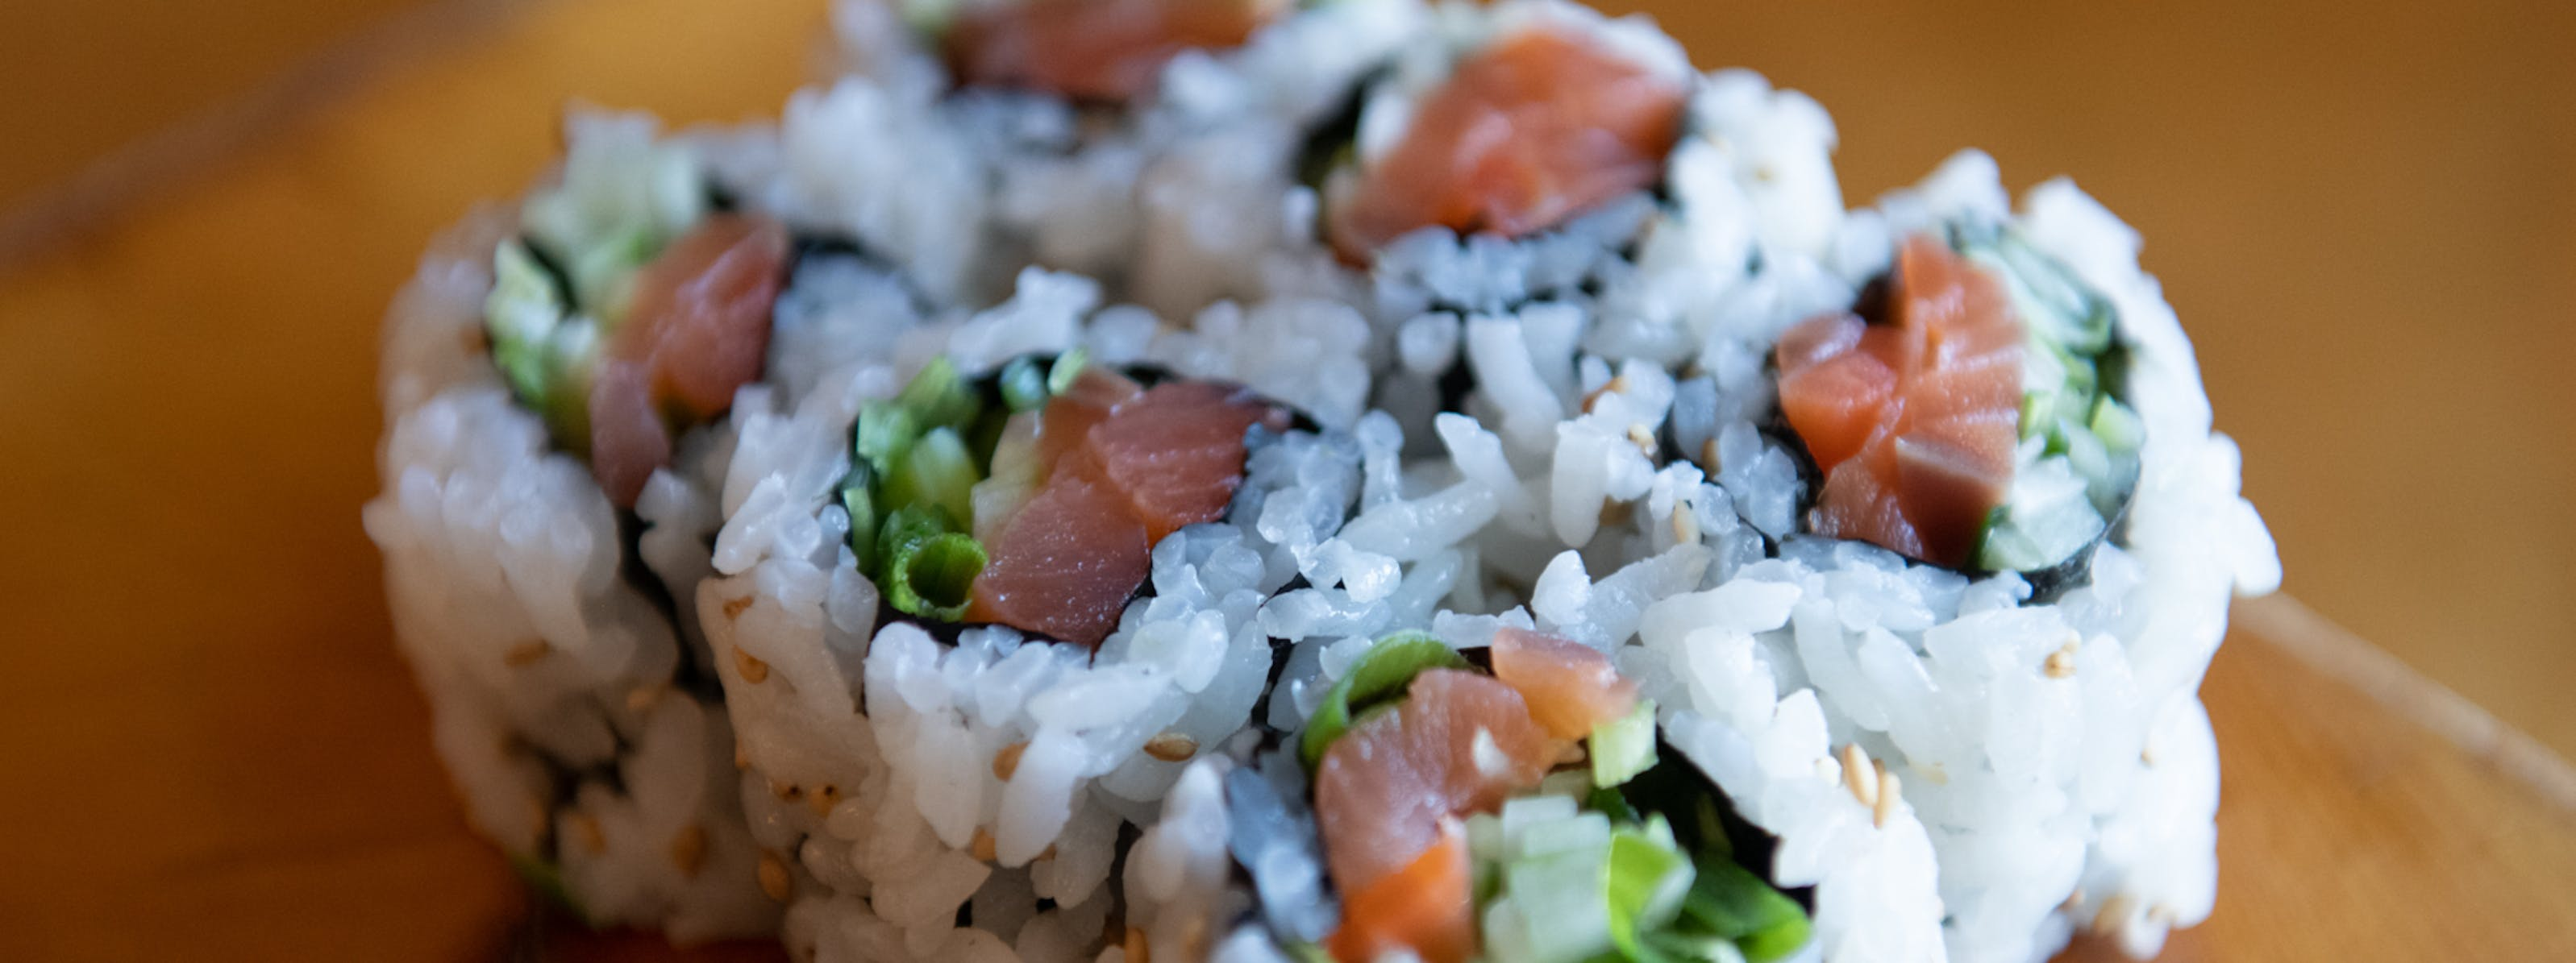 The Seattle Sushi Delivery & Takeout Guide - Seattle - The Infatuation